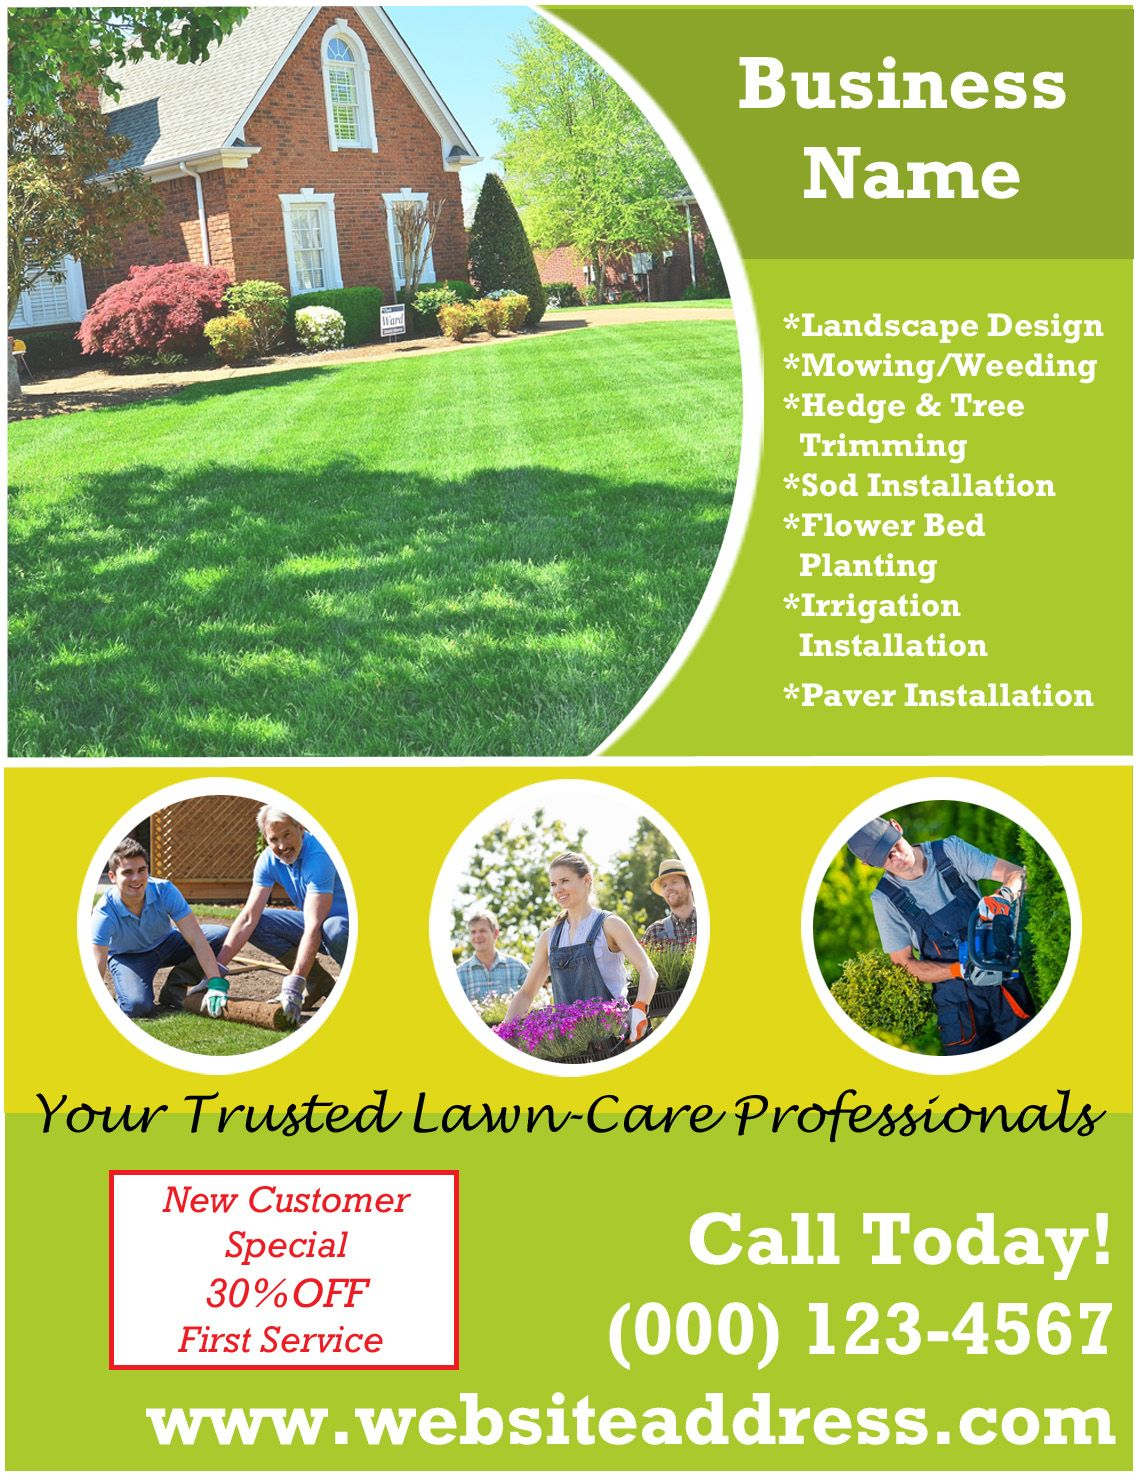 Landscaping Ad 2 Garden Services How To Install Pavers Sod